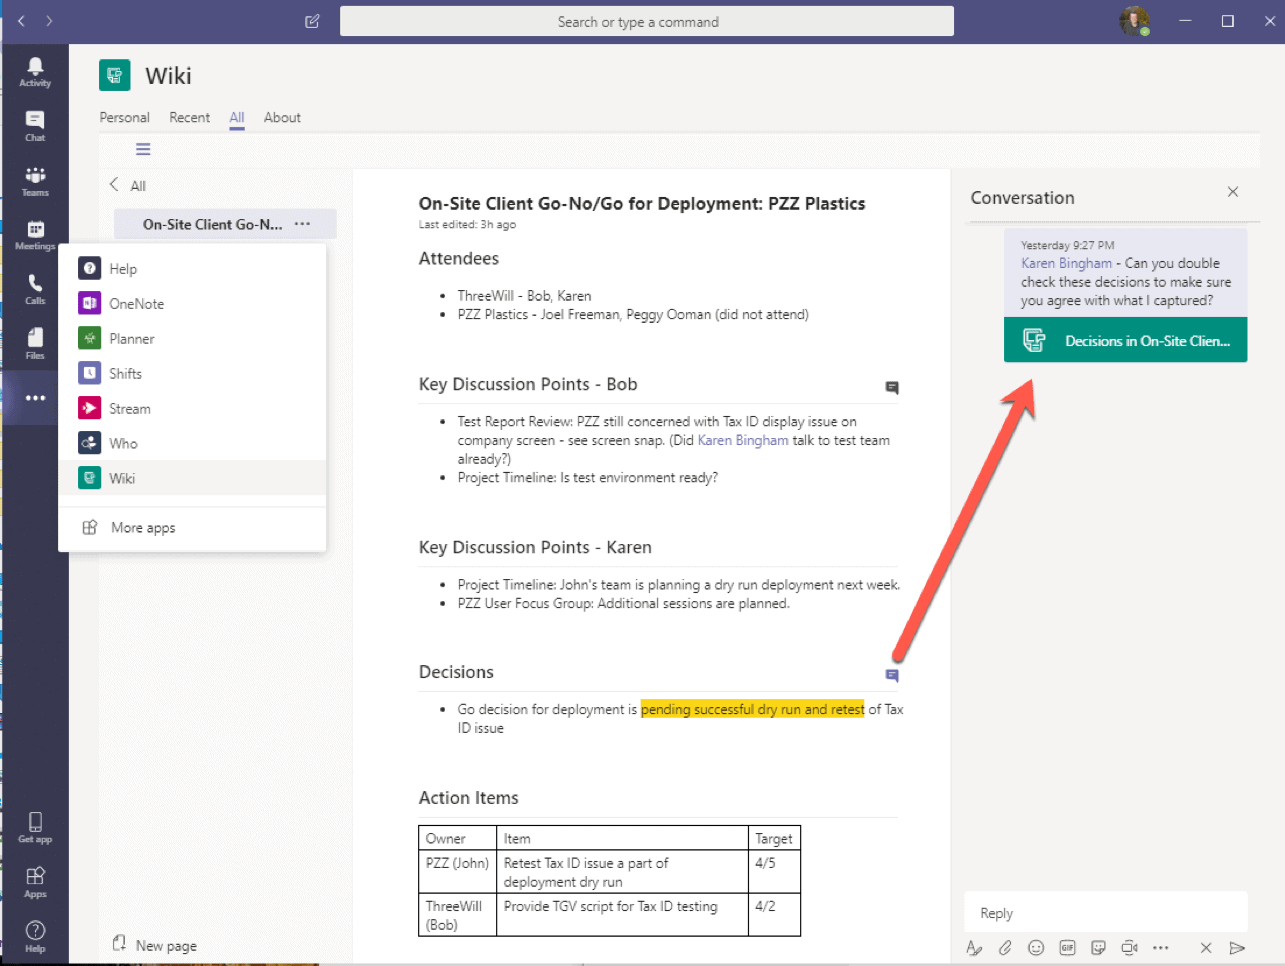 Microsoft Teams wiki capability screenshot